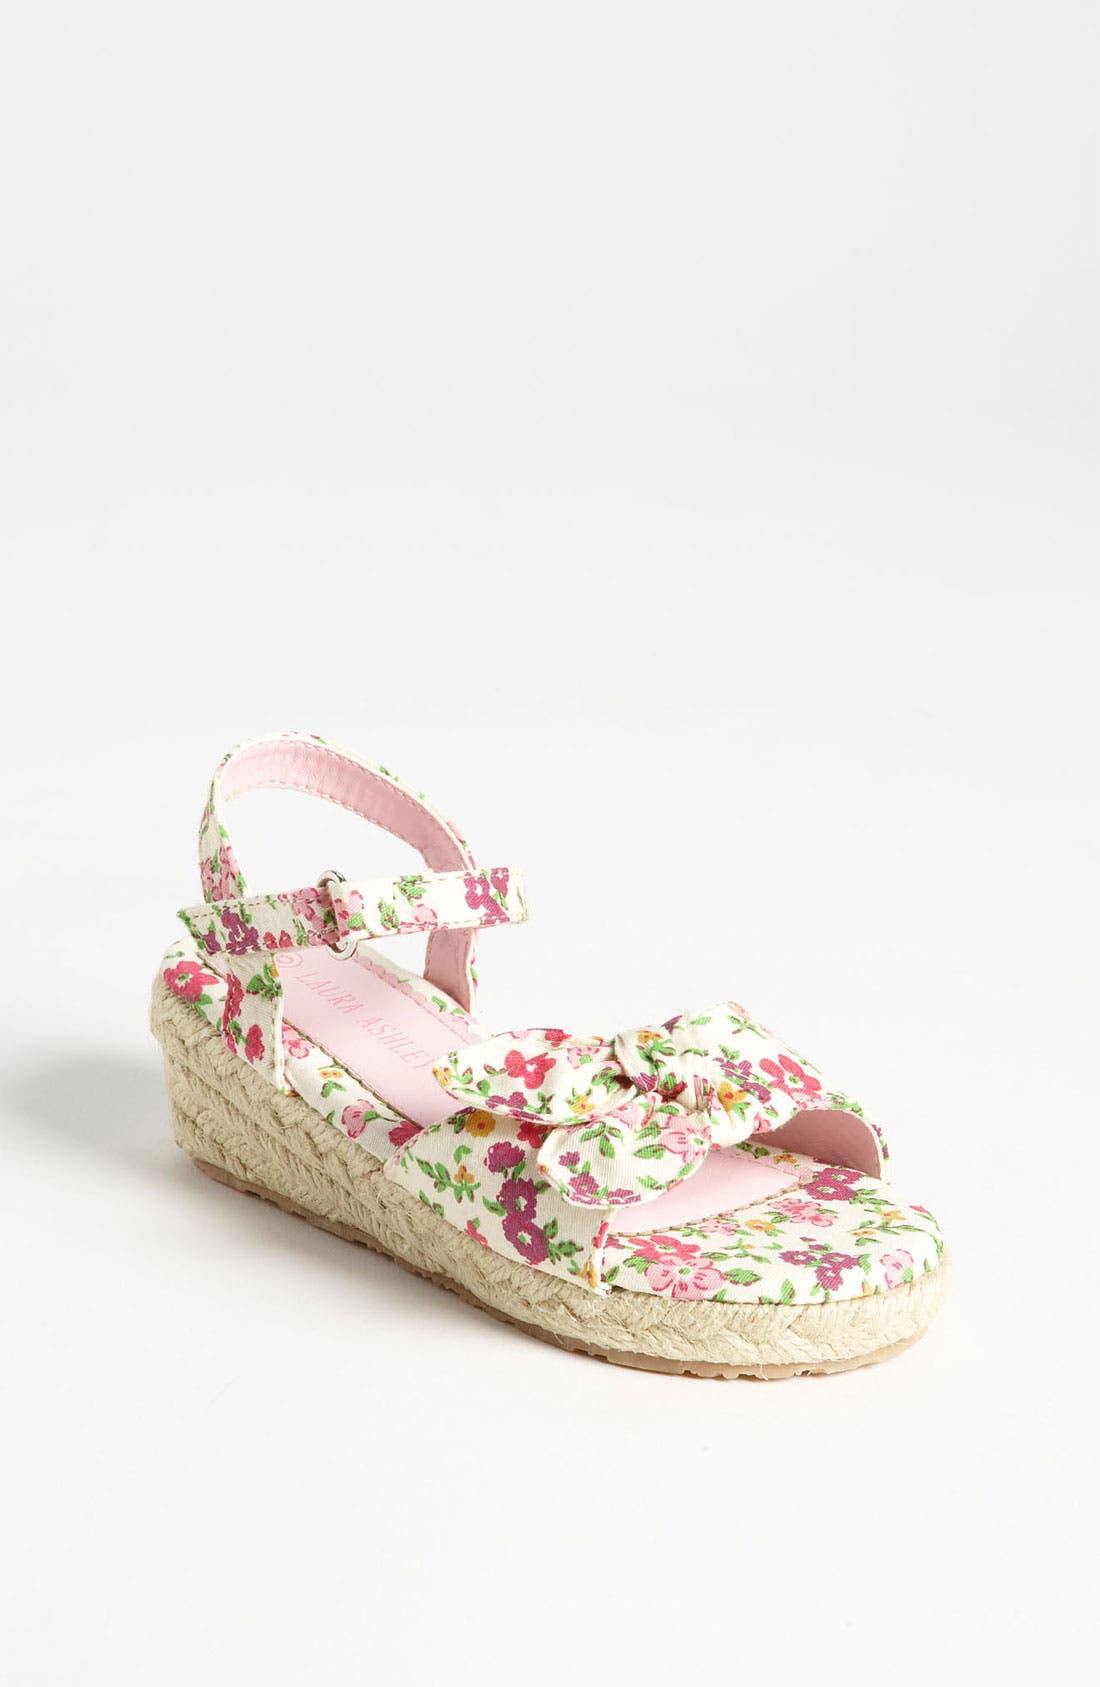 Alternate Image 1 Selected - Laura Ashley Flower Print Fabric Sandal (Walker & Toddler)